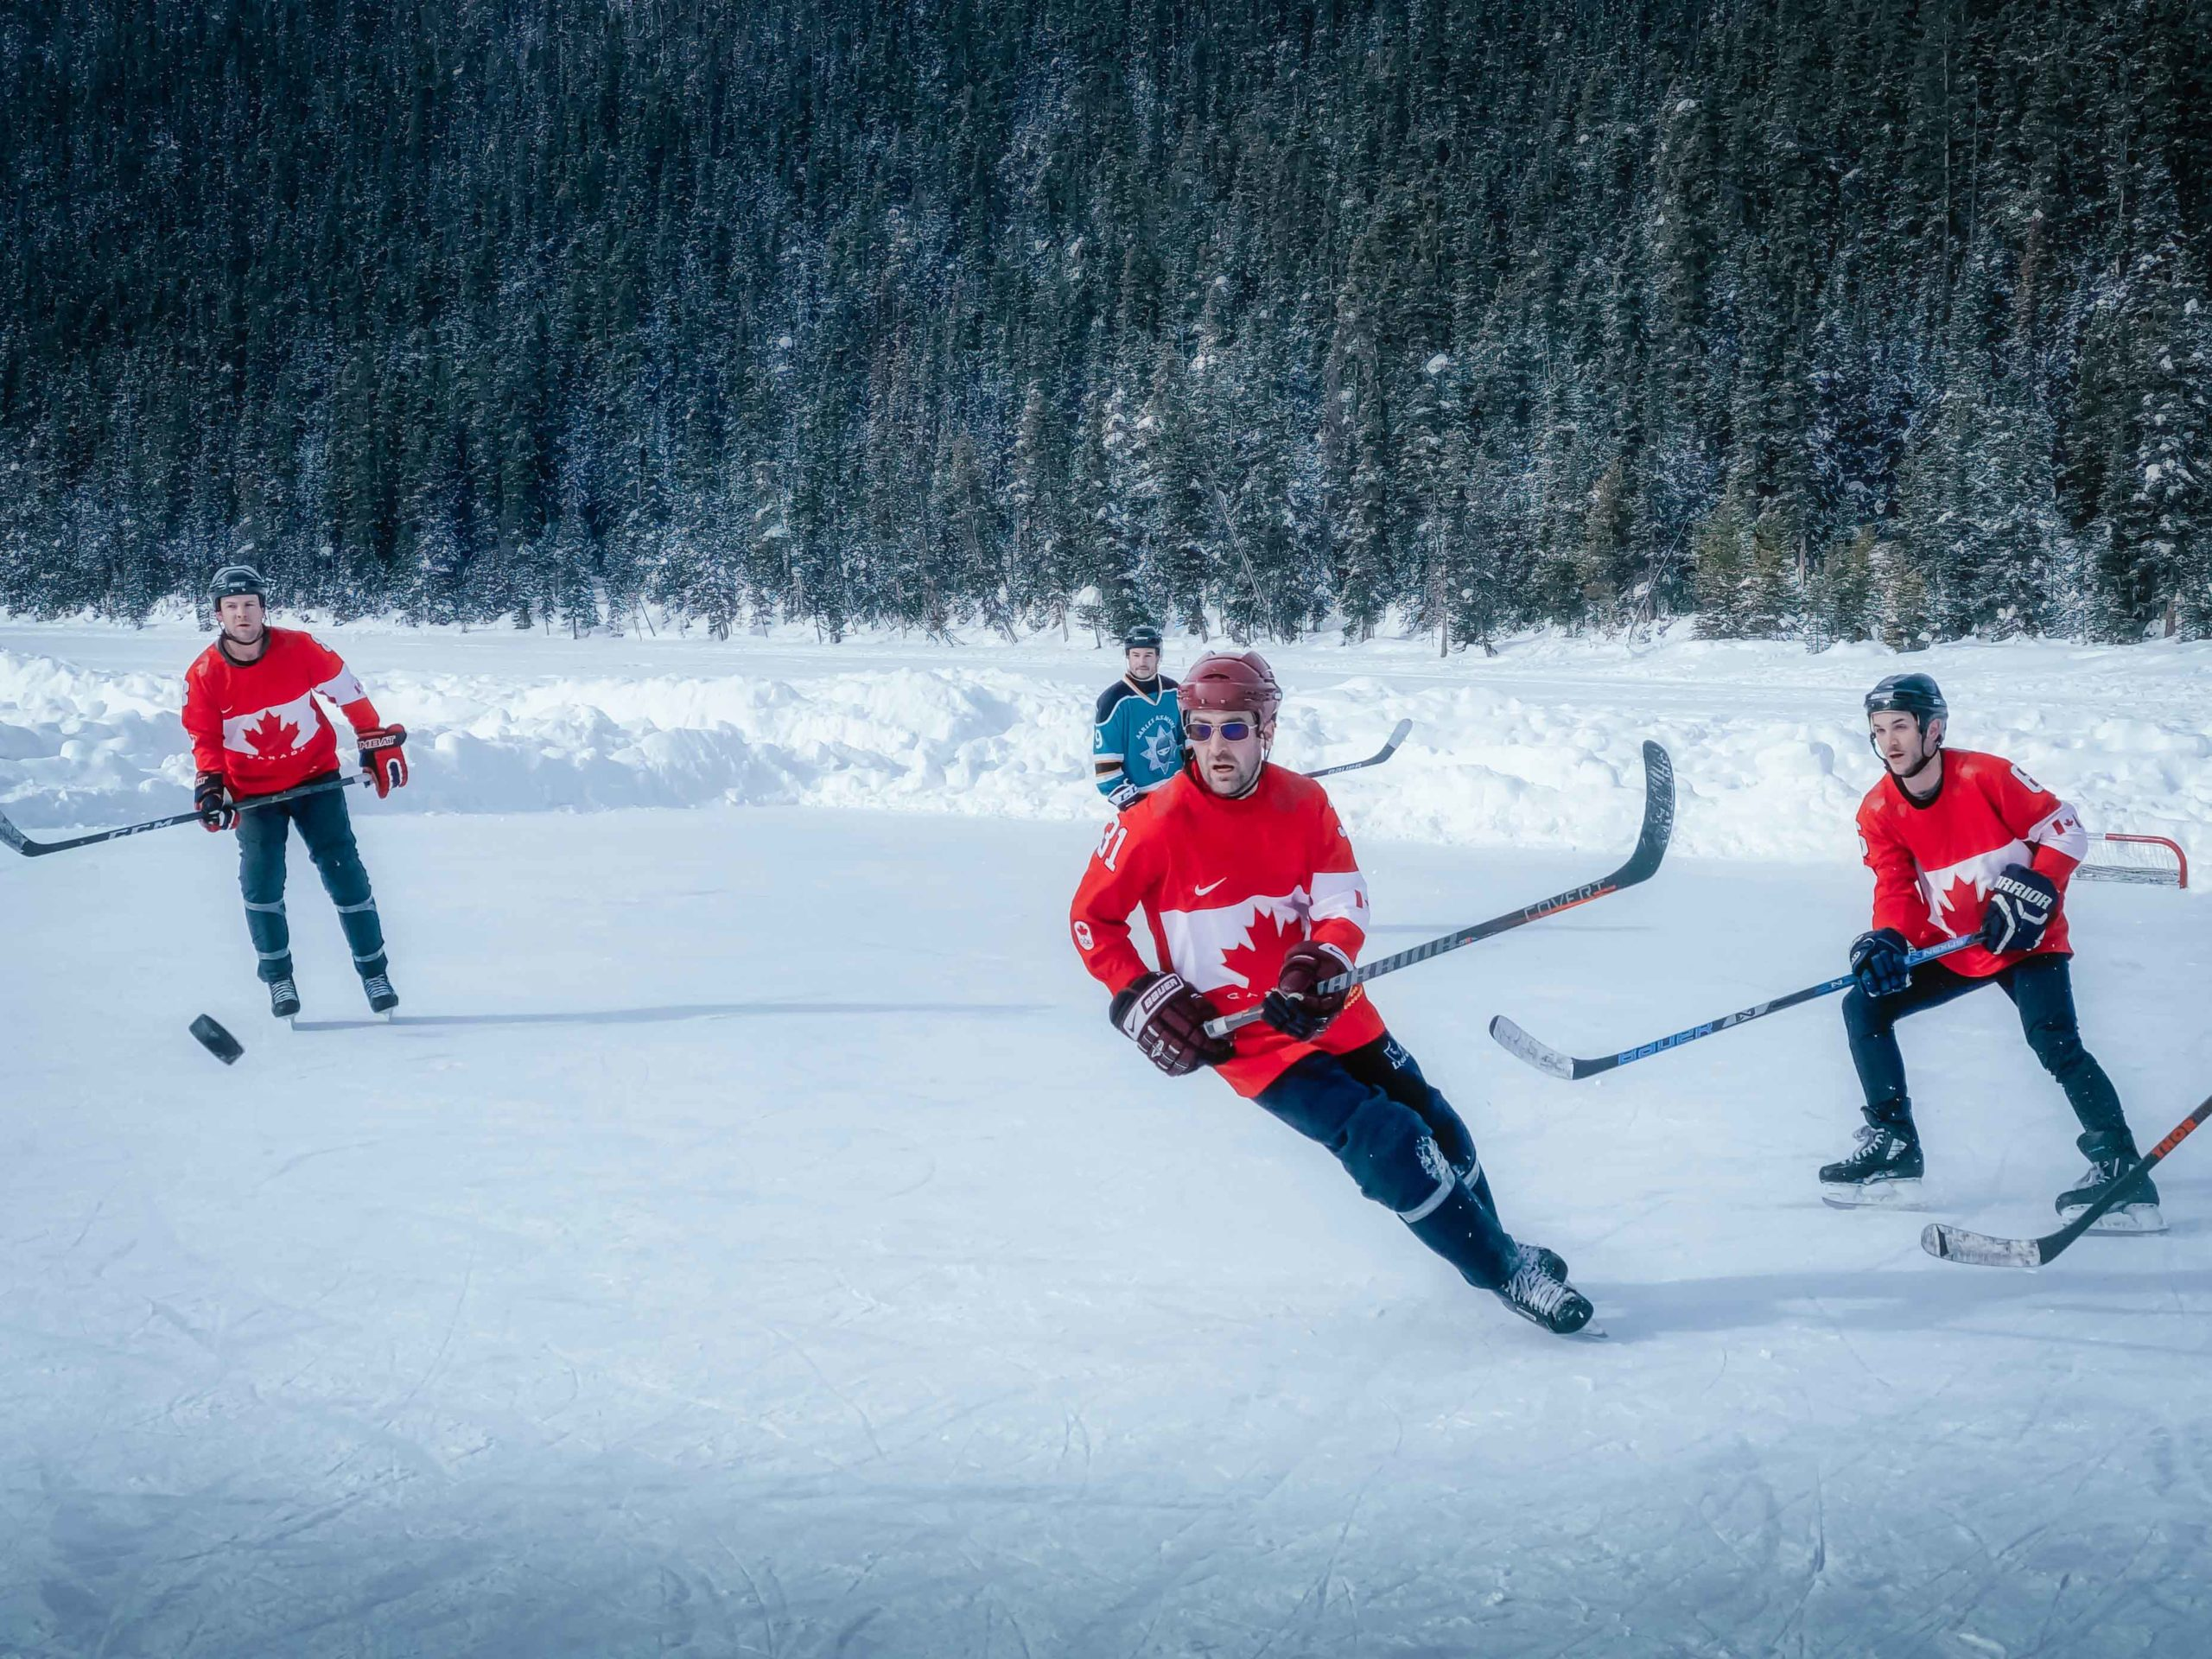 Hockey Players at the Pond Hockey Classic in Lake Louise captured using burst mode on a smartphone as part of Sanjay Chauhan's series on photography tips for your phone